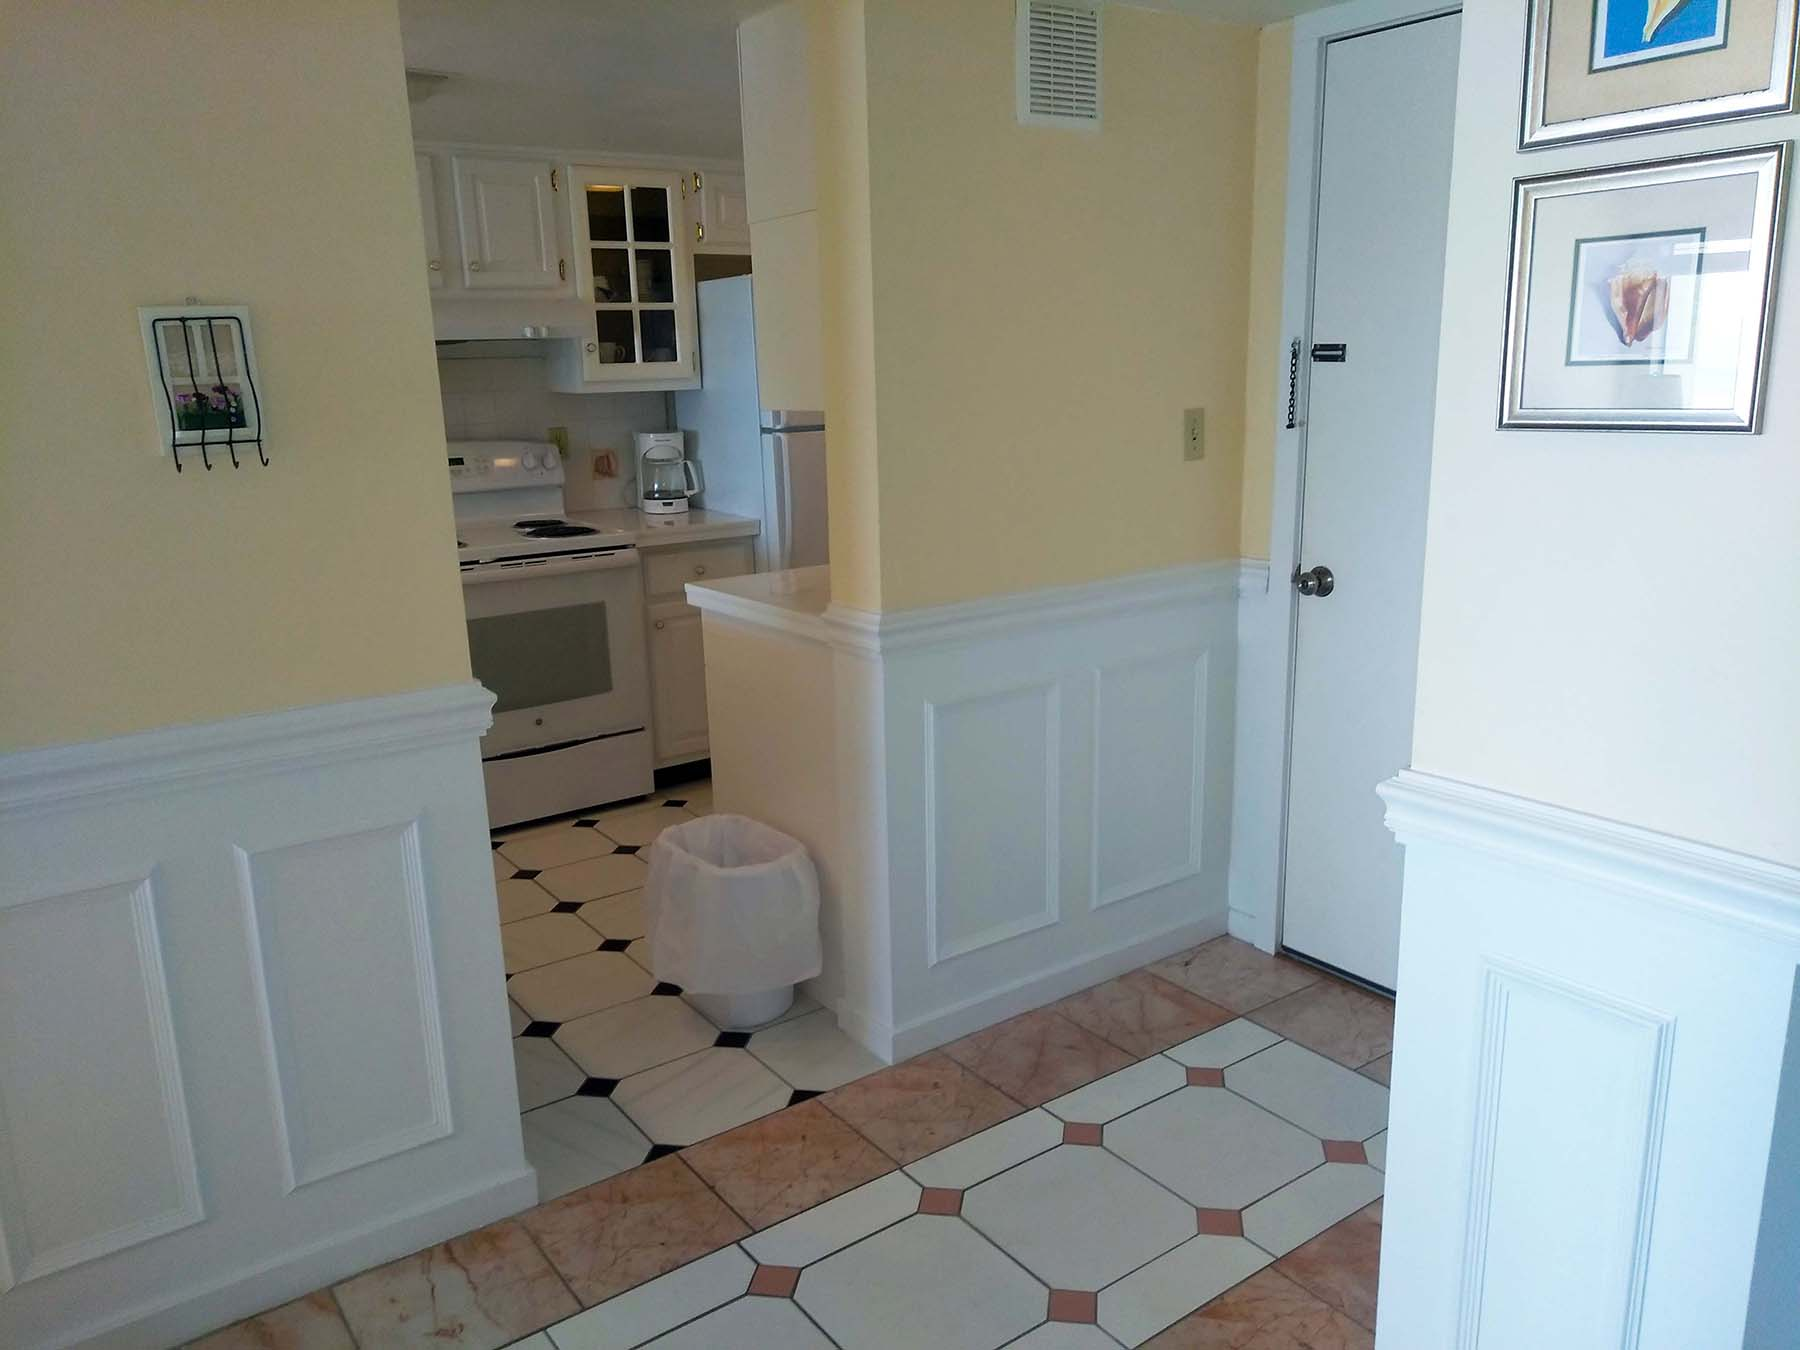 C-120 Tiled Entryway With Kitchen In View – Amelia Surf & Racquet Club